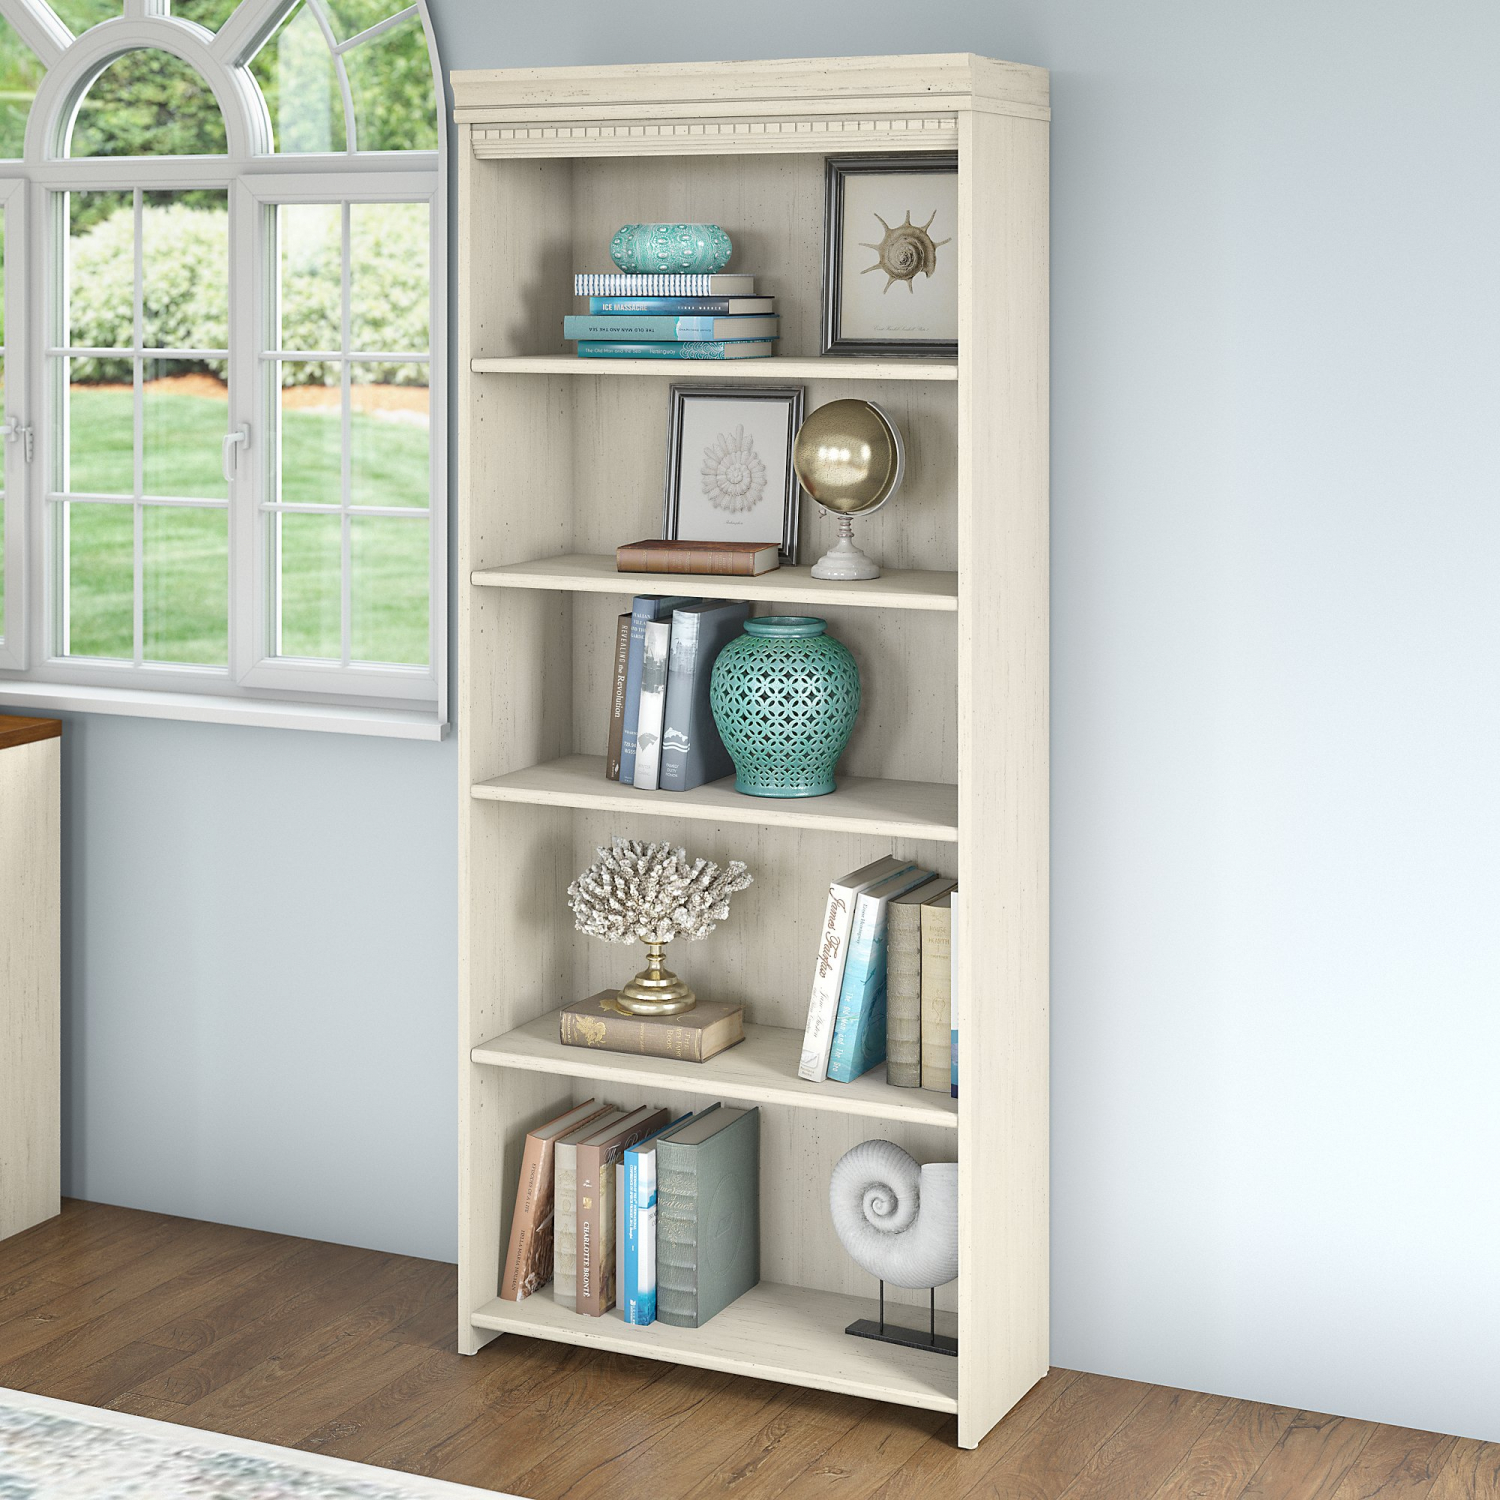 Details About Bush Furniture Fairview 5 Shelf Bookcase In Antique White